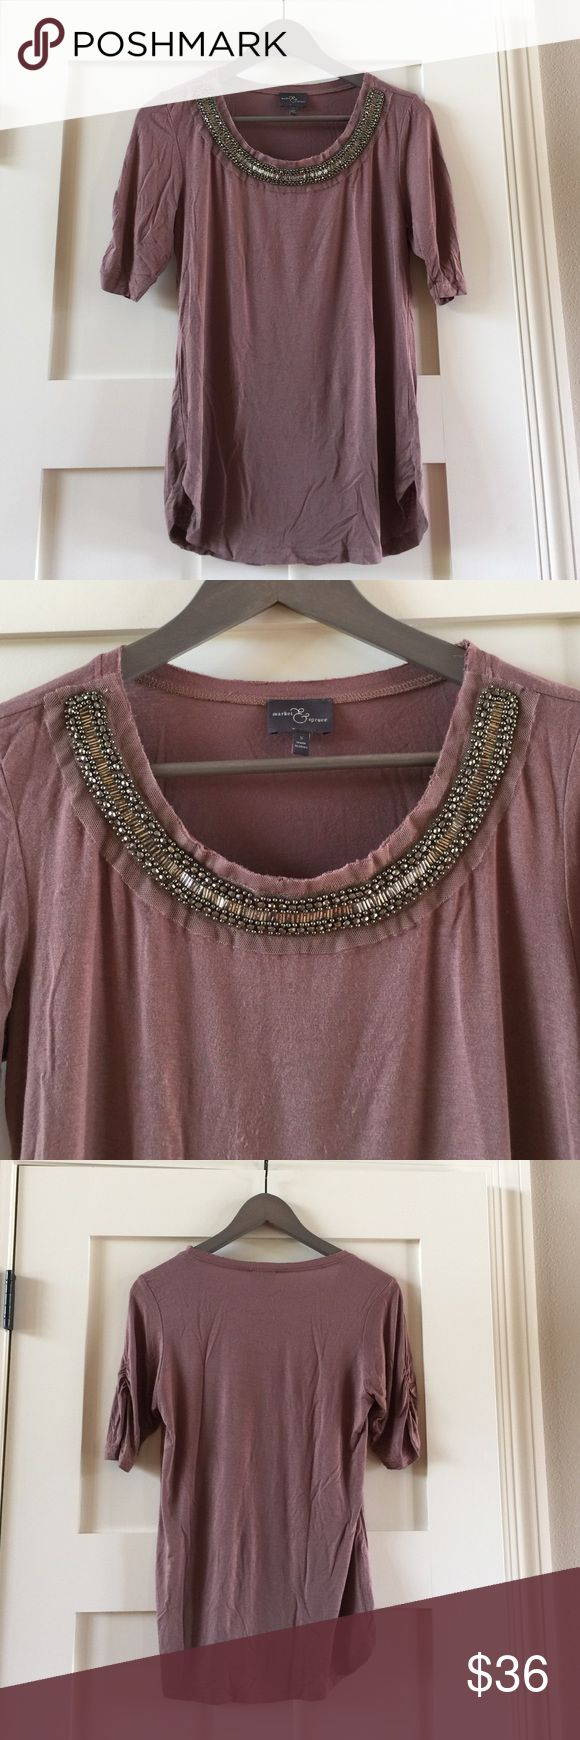 Market & Spruce Stitch Fix SzS beaded neckline top Market & Spruce a Stitch Fix SzS beaded neckline top.  Lots of beautiful beading detail at neckline.  Would look cute with skinny jeans and heels or flats.  Comes from free and smoke free home. Market & Spruce Stitch Fix Tops Blouses